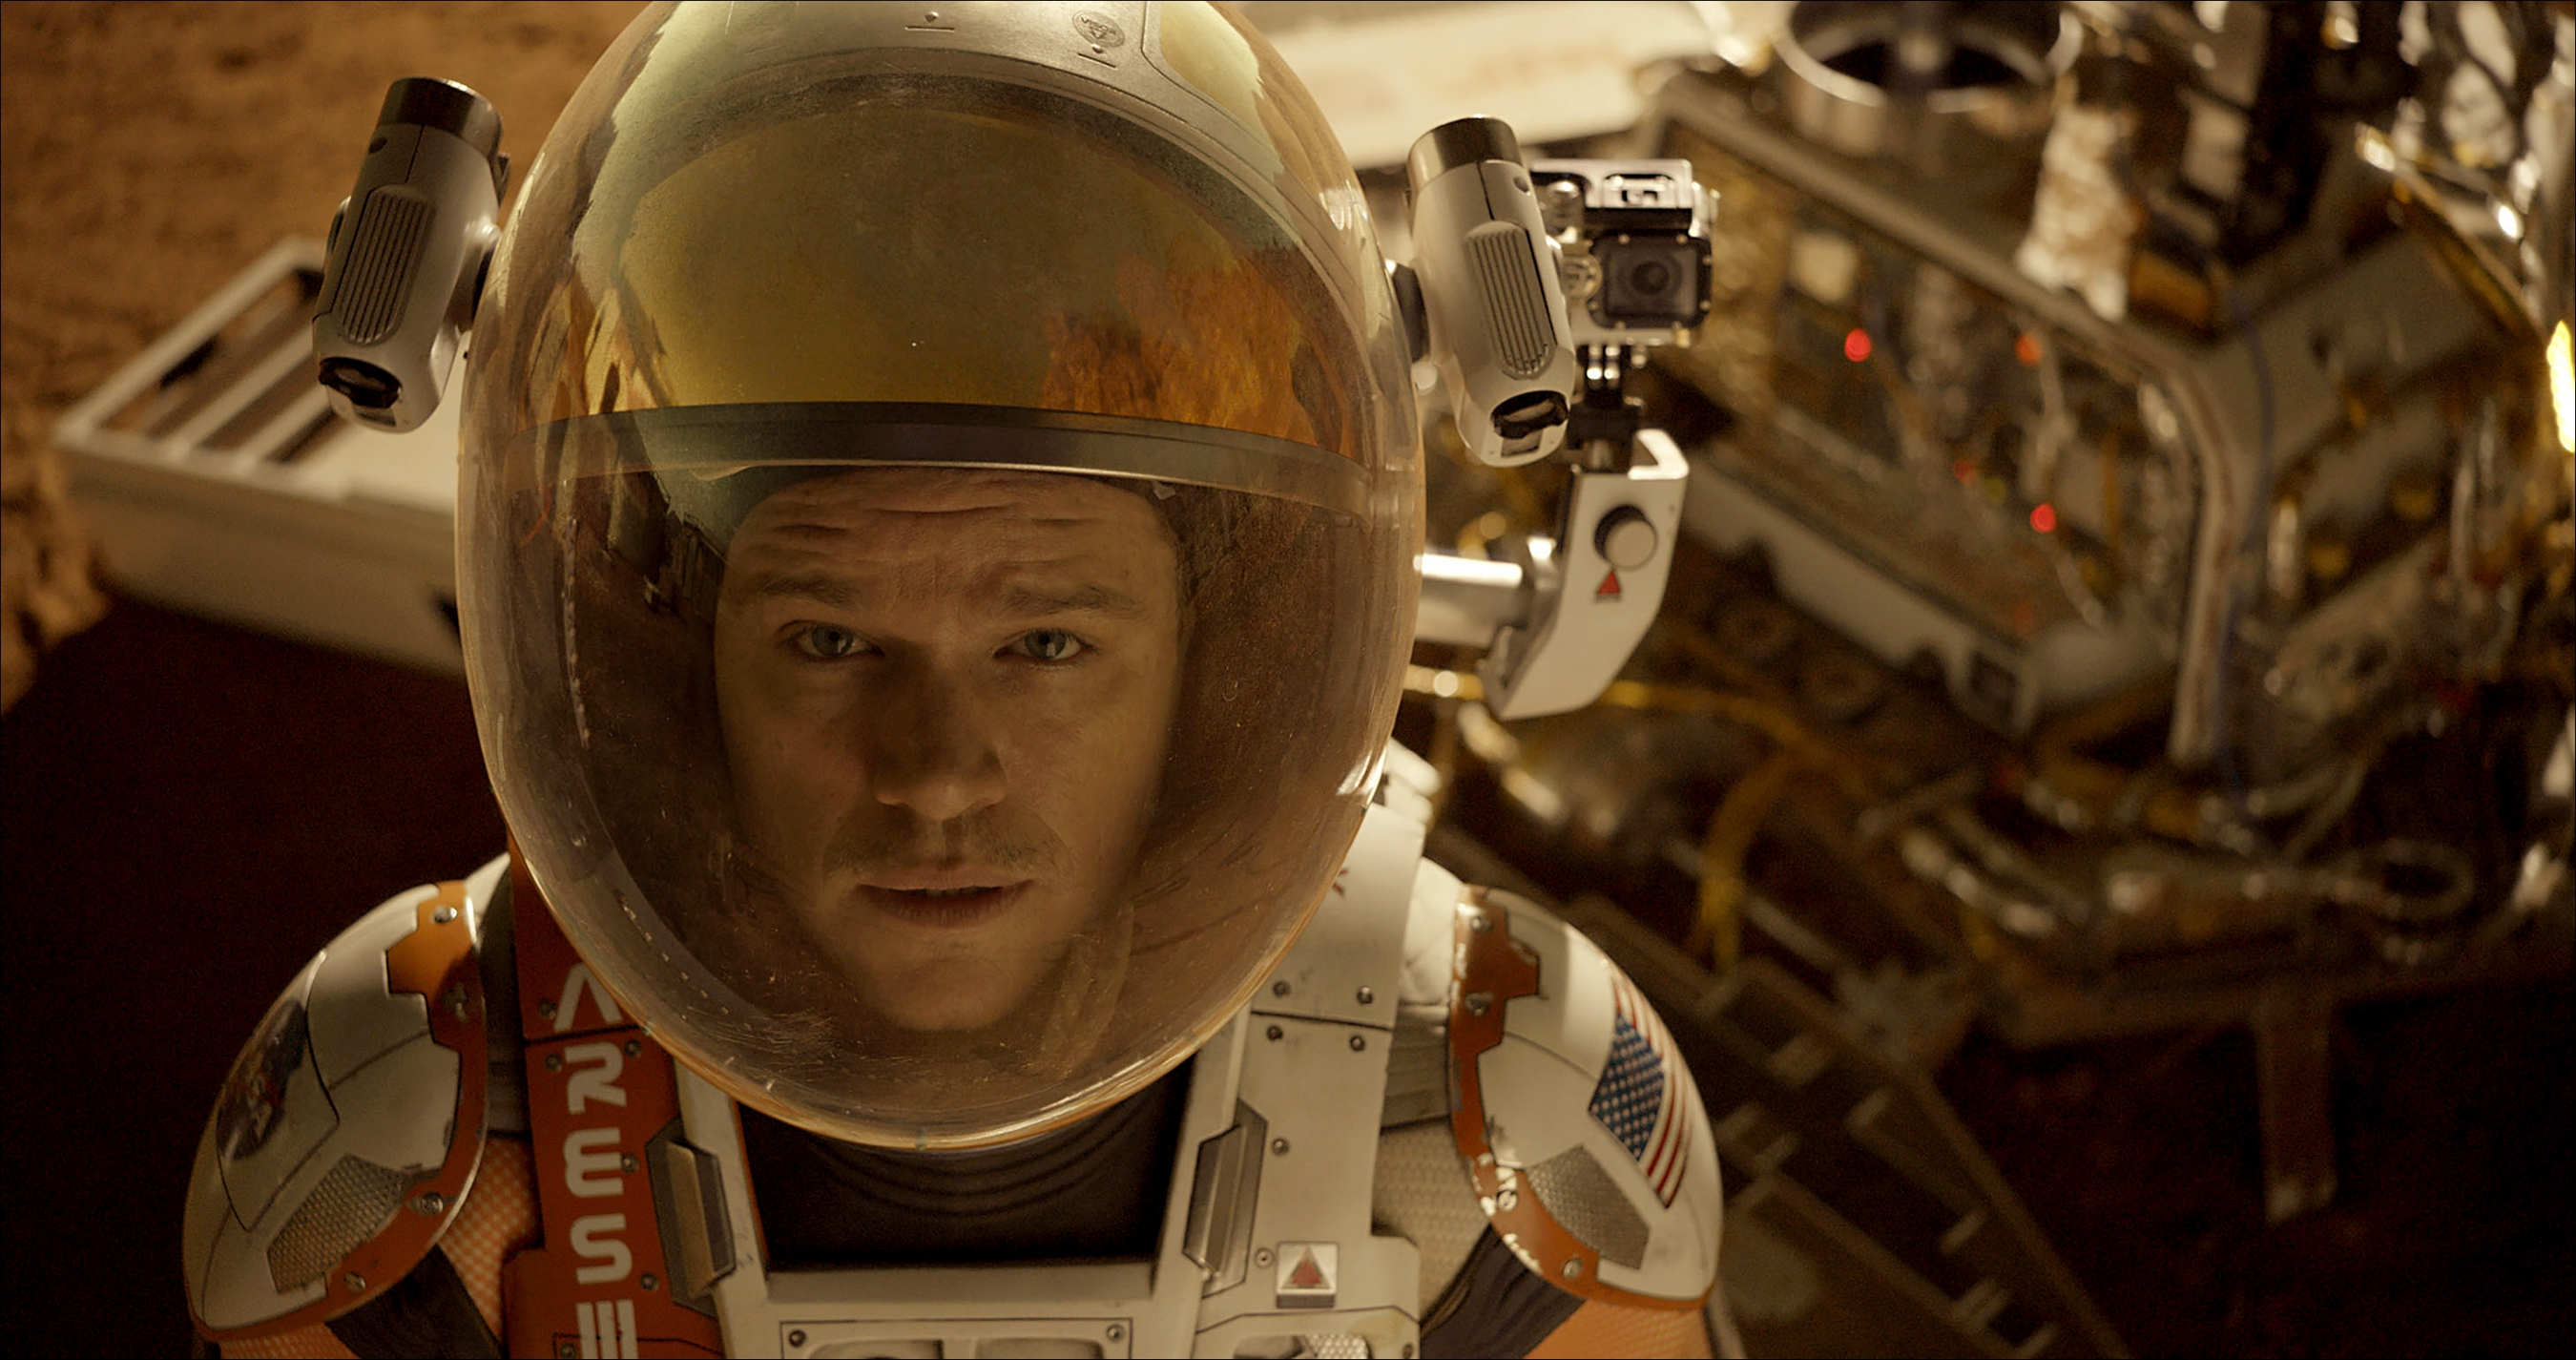 """The Martian"" features a pivotal dust storm shot in-camera using a mix of vermiculite and black paper to double for Mars detritus."